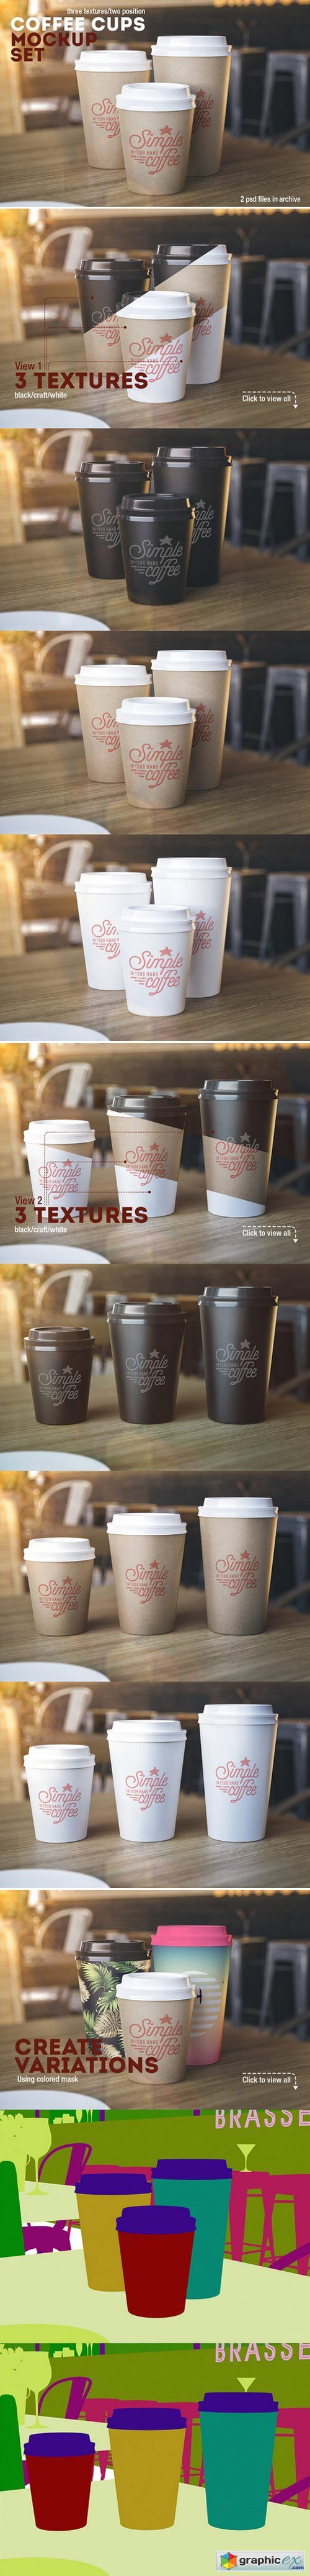 Coffee Cups Mockup